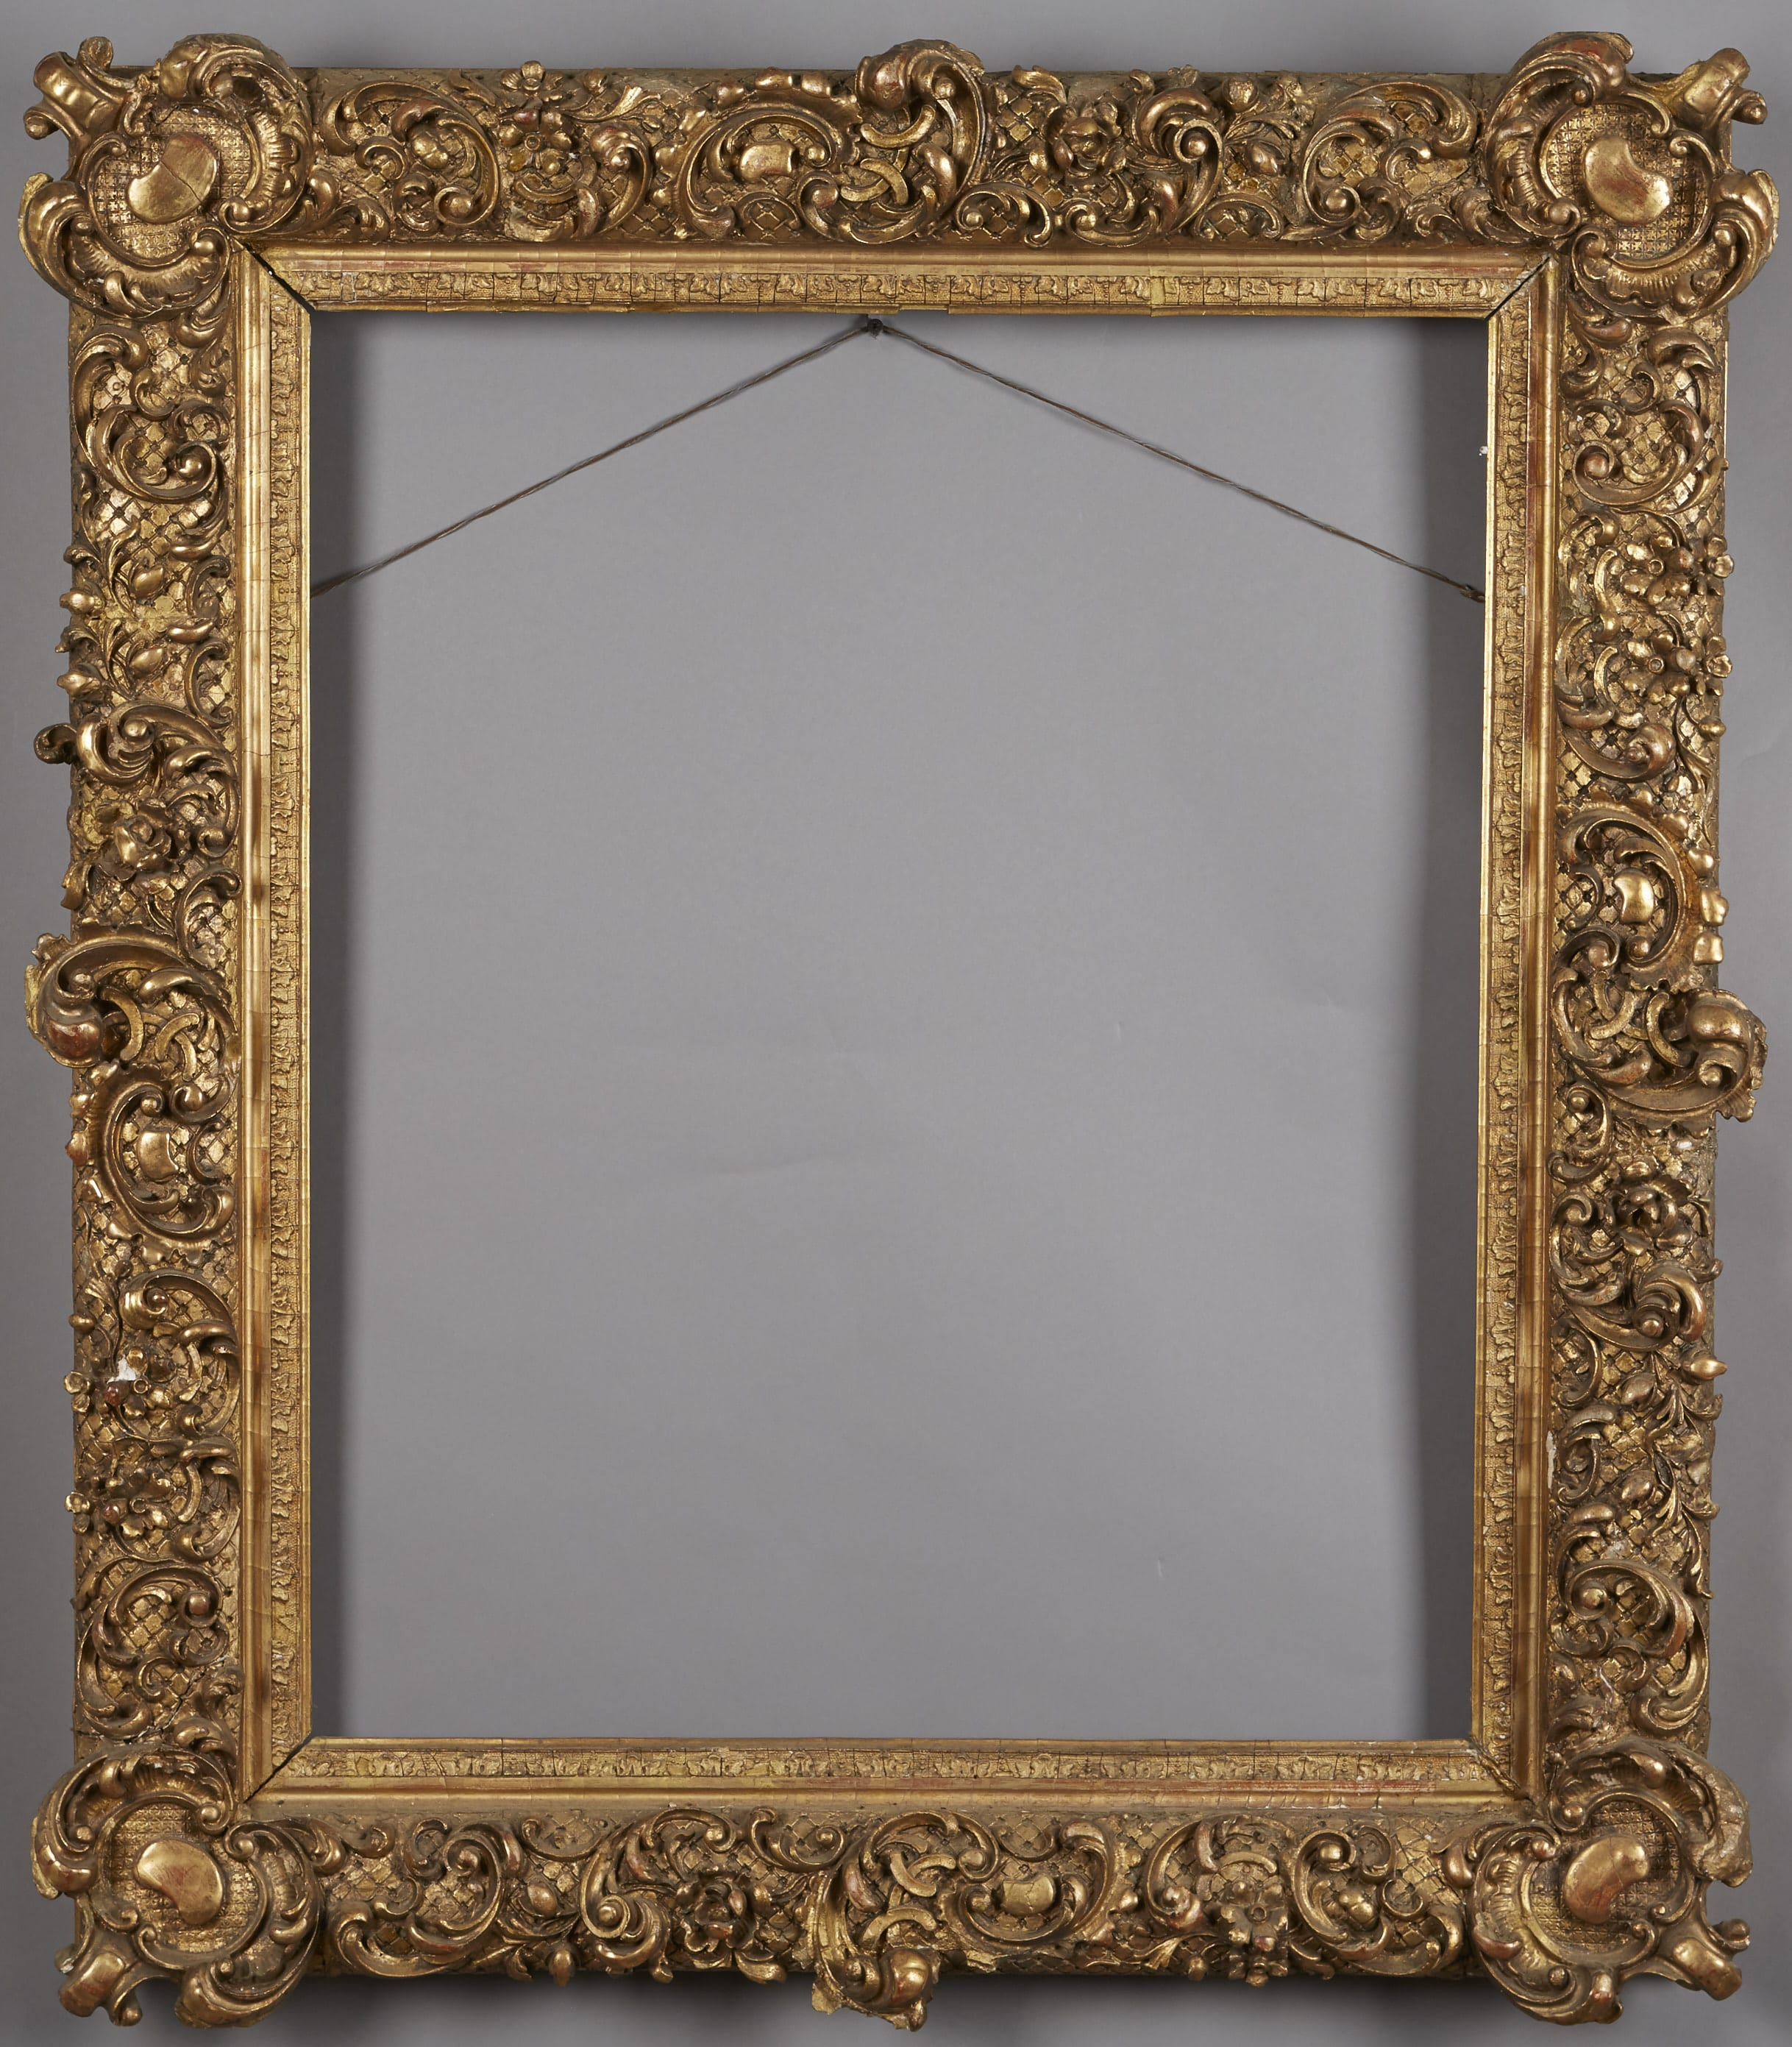 Lot 143: Large Gilt Ornate Frame